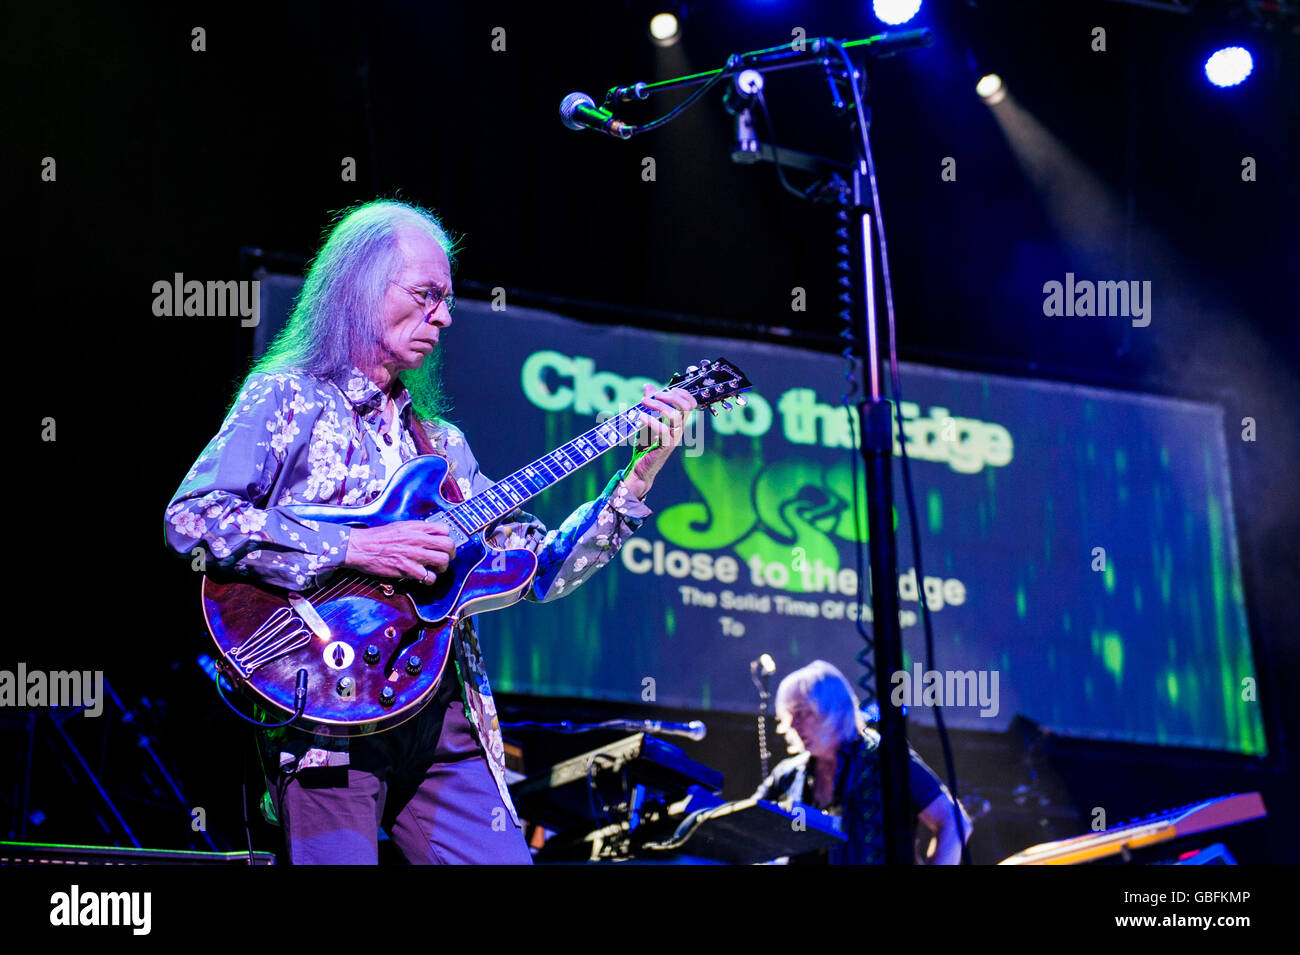 Steve Howe of British progressive rock band Yes performing at the Clyde Auditorium, Glasgow. - Stock Image